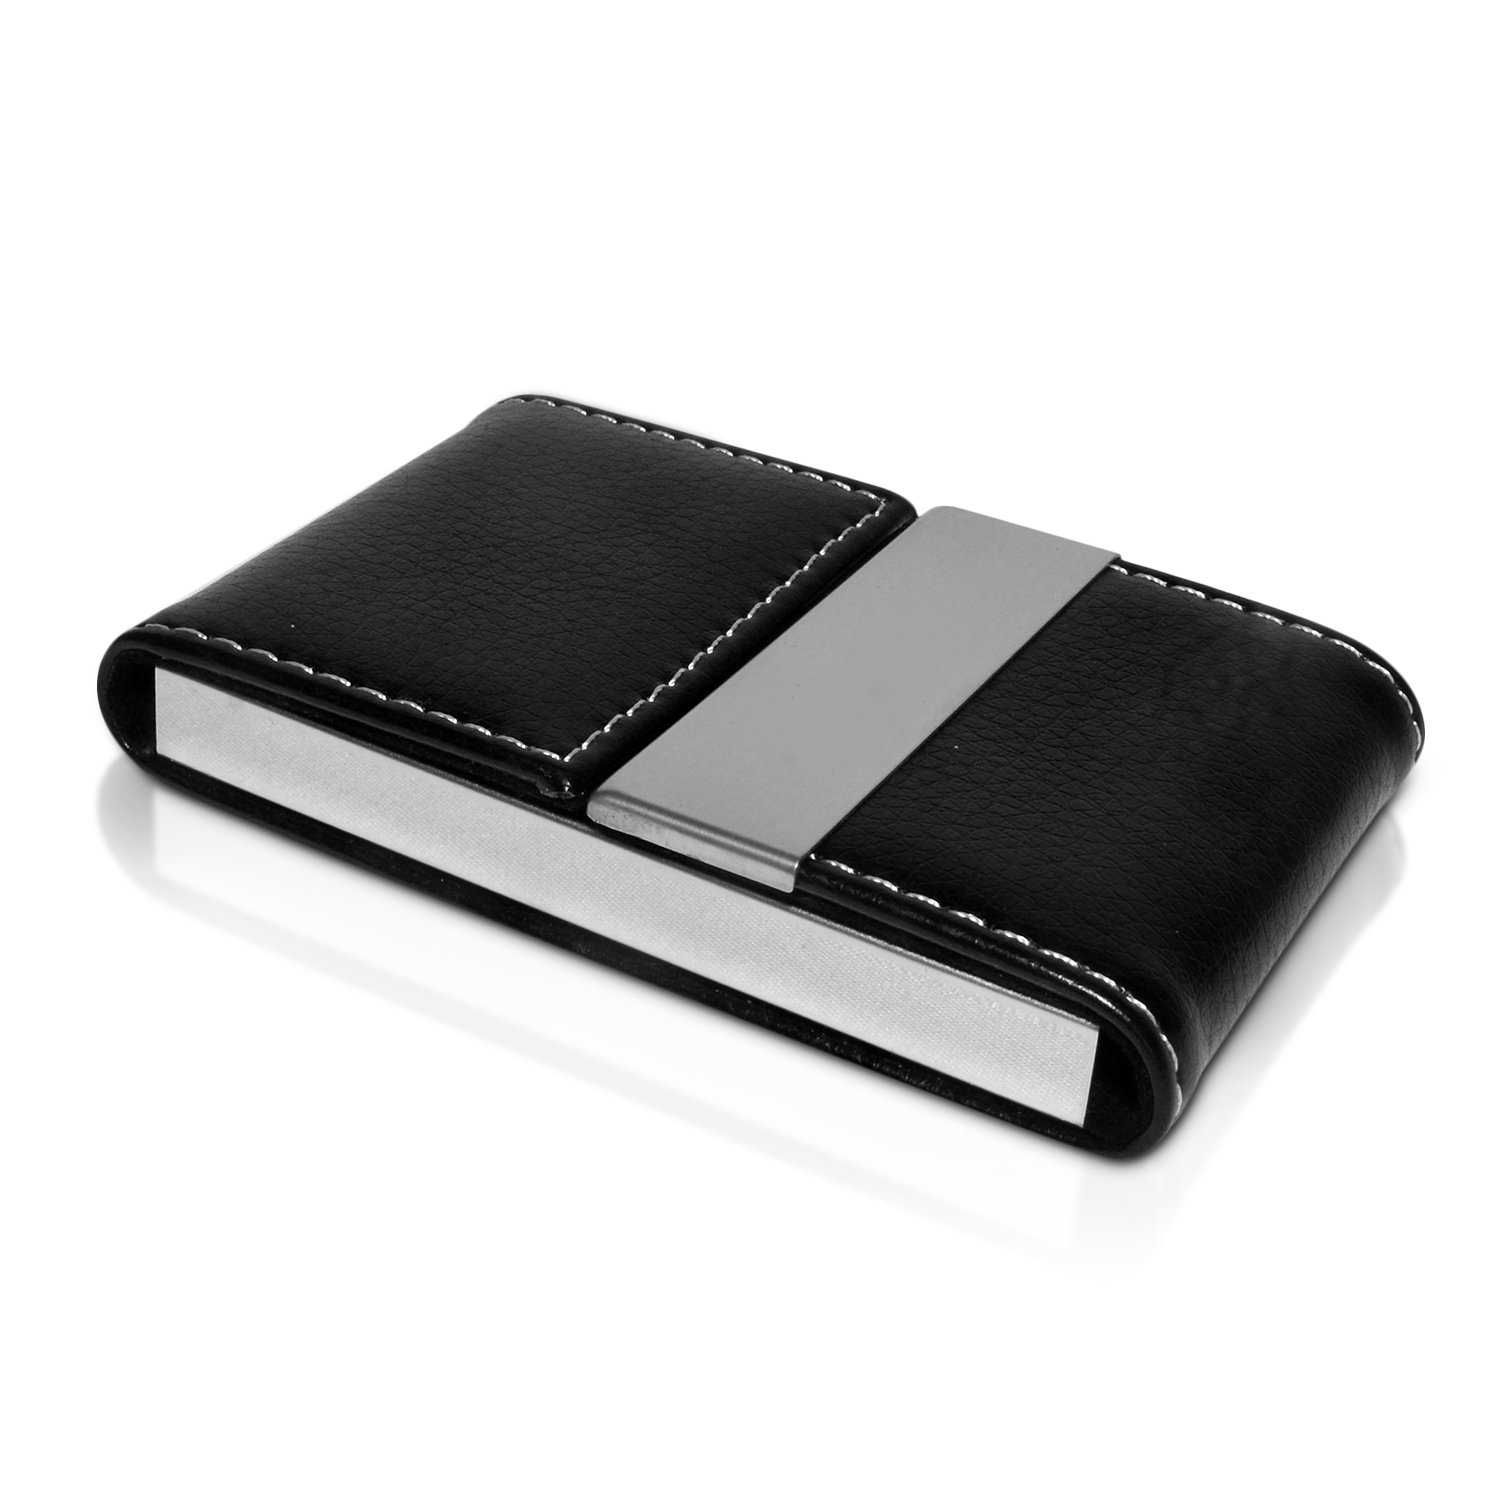 NICESTILE Business Card Holder, PU Leather Stainless Steel Name Card Case Holder with Magnetic Shut Double Sided Open (Black)